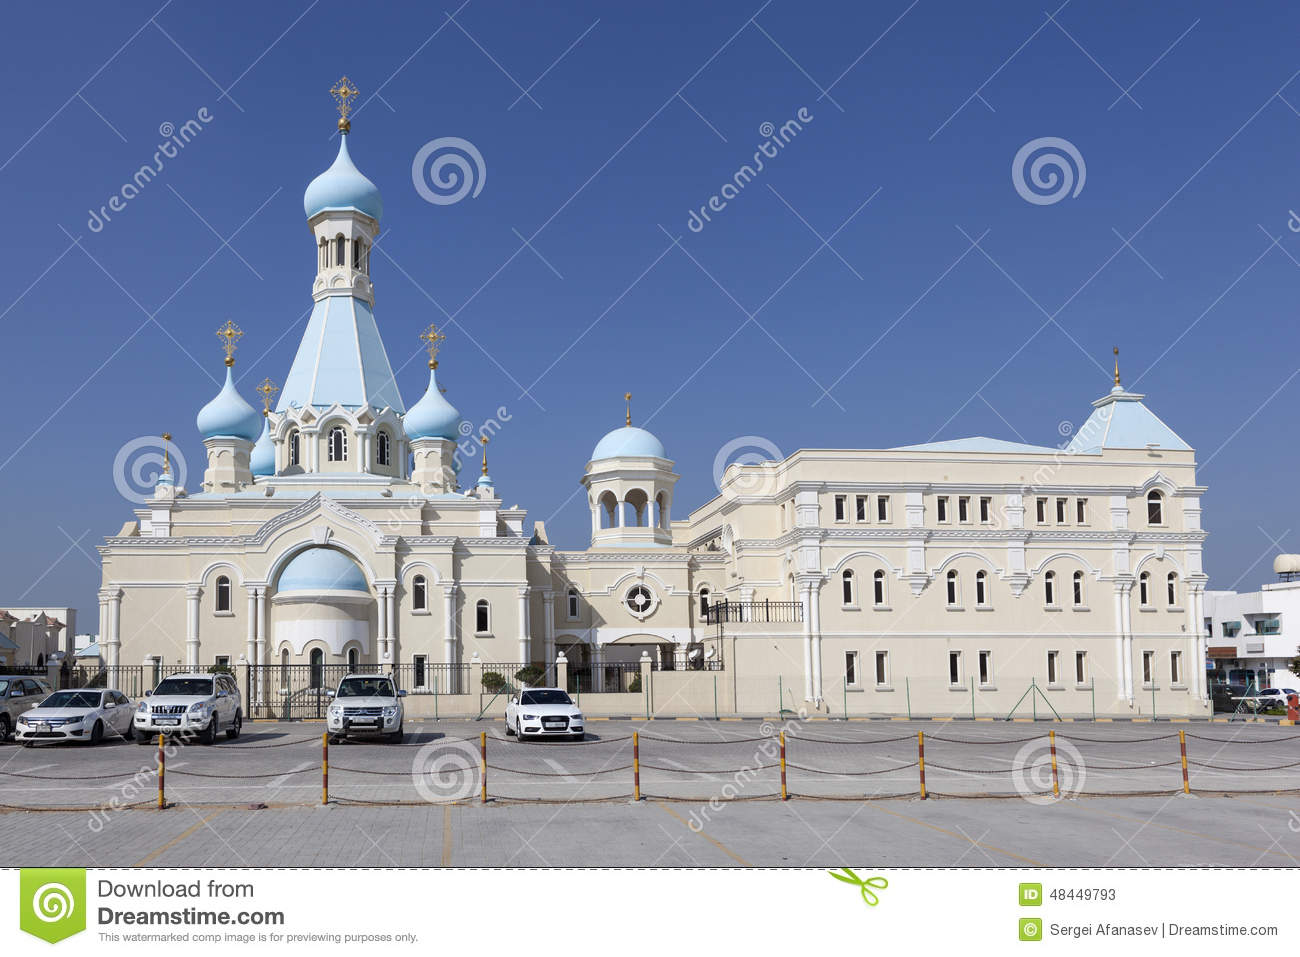 https://thumbs.dreamstime.com/z/russian-church-apostle-philip-sharjah-united-arab-emirates-st-orthodox-first-buildings-arabian-peninsula-48449793.jpg